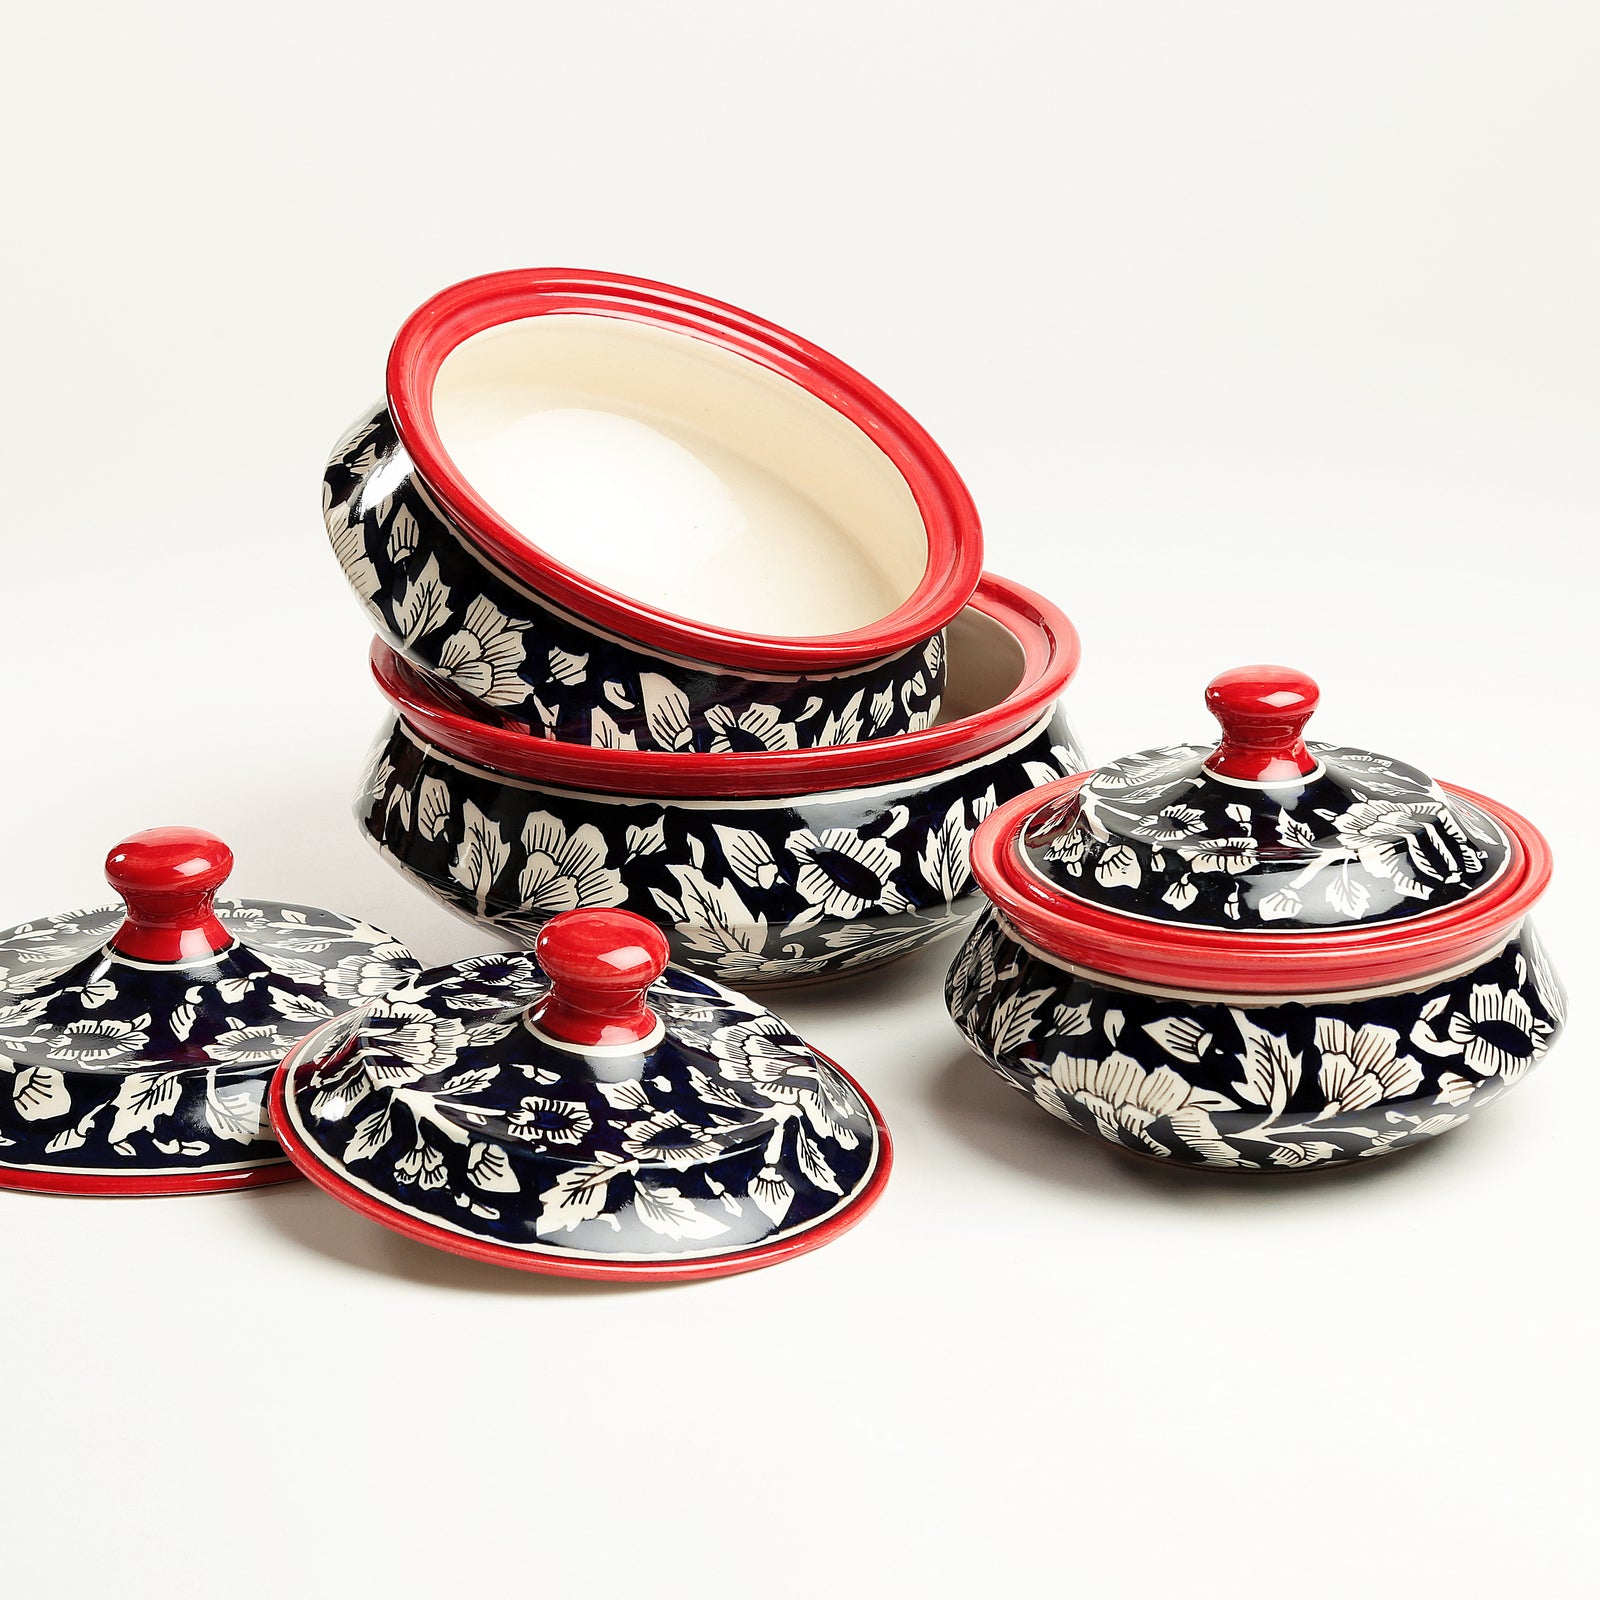 Mughal Handpainted Serving Bowls with Lids - set of 3